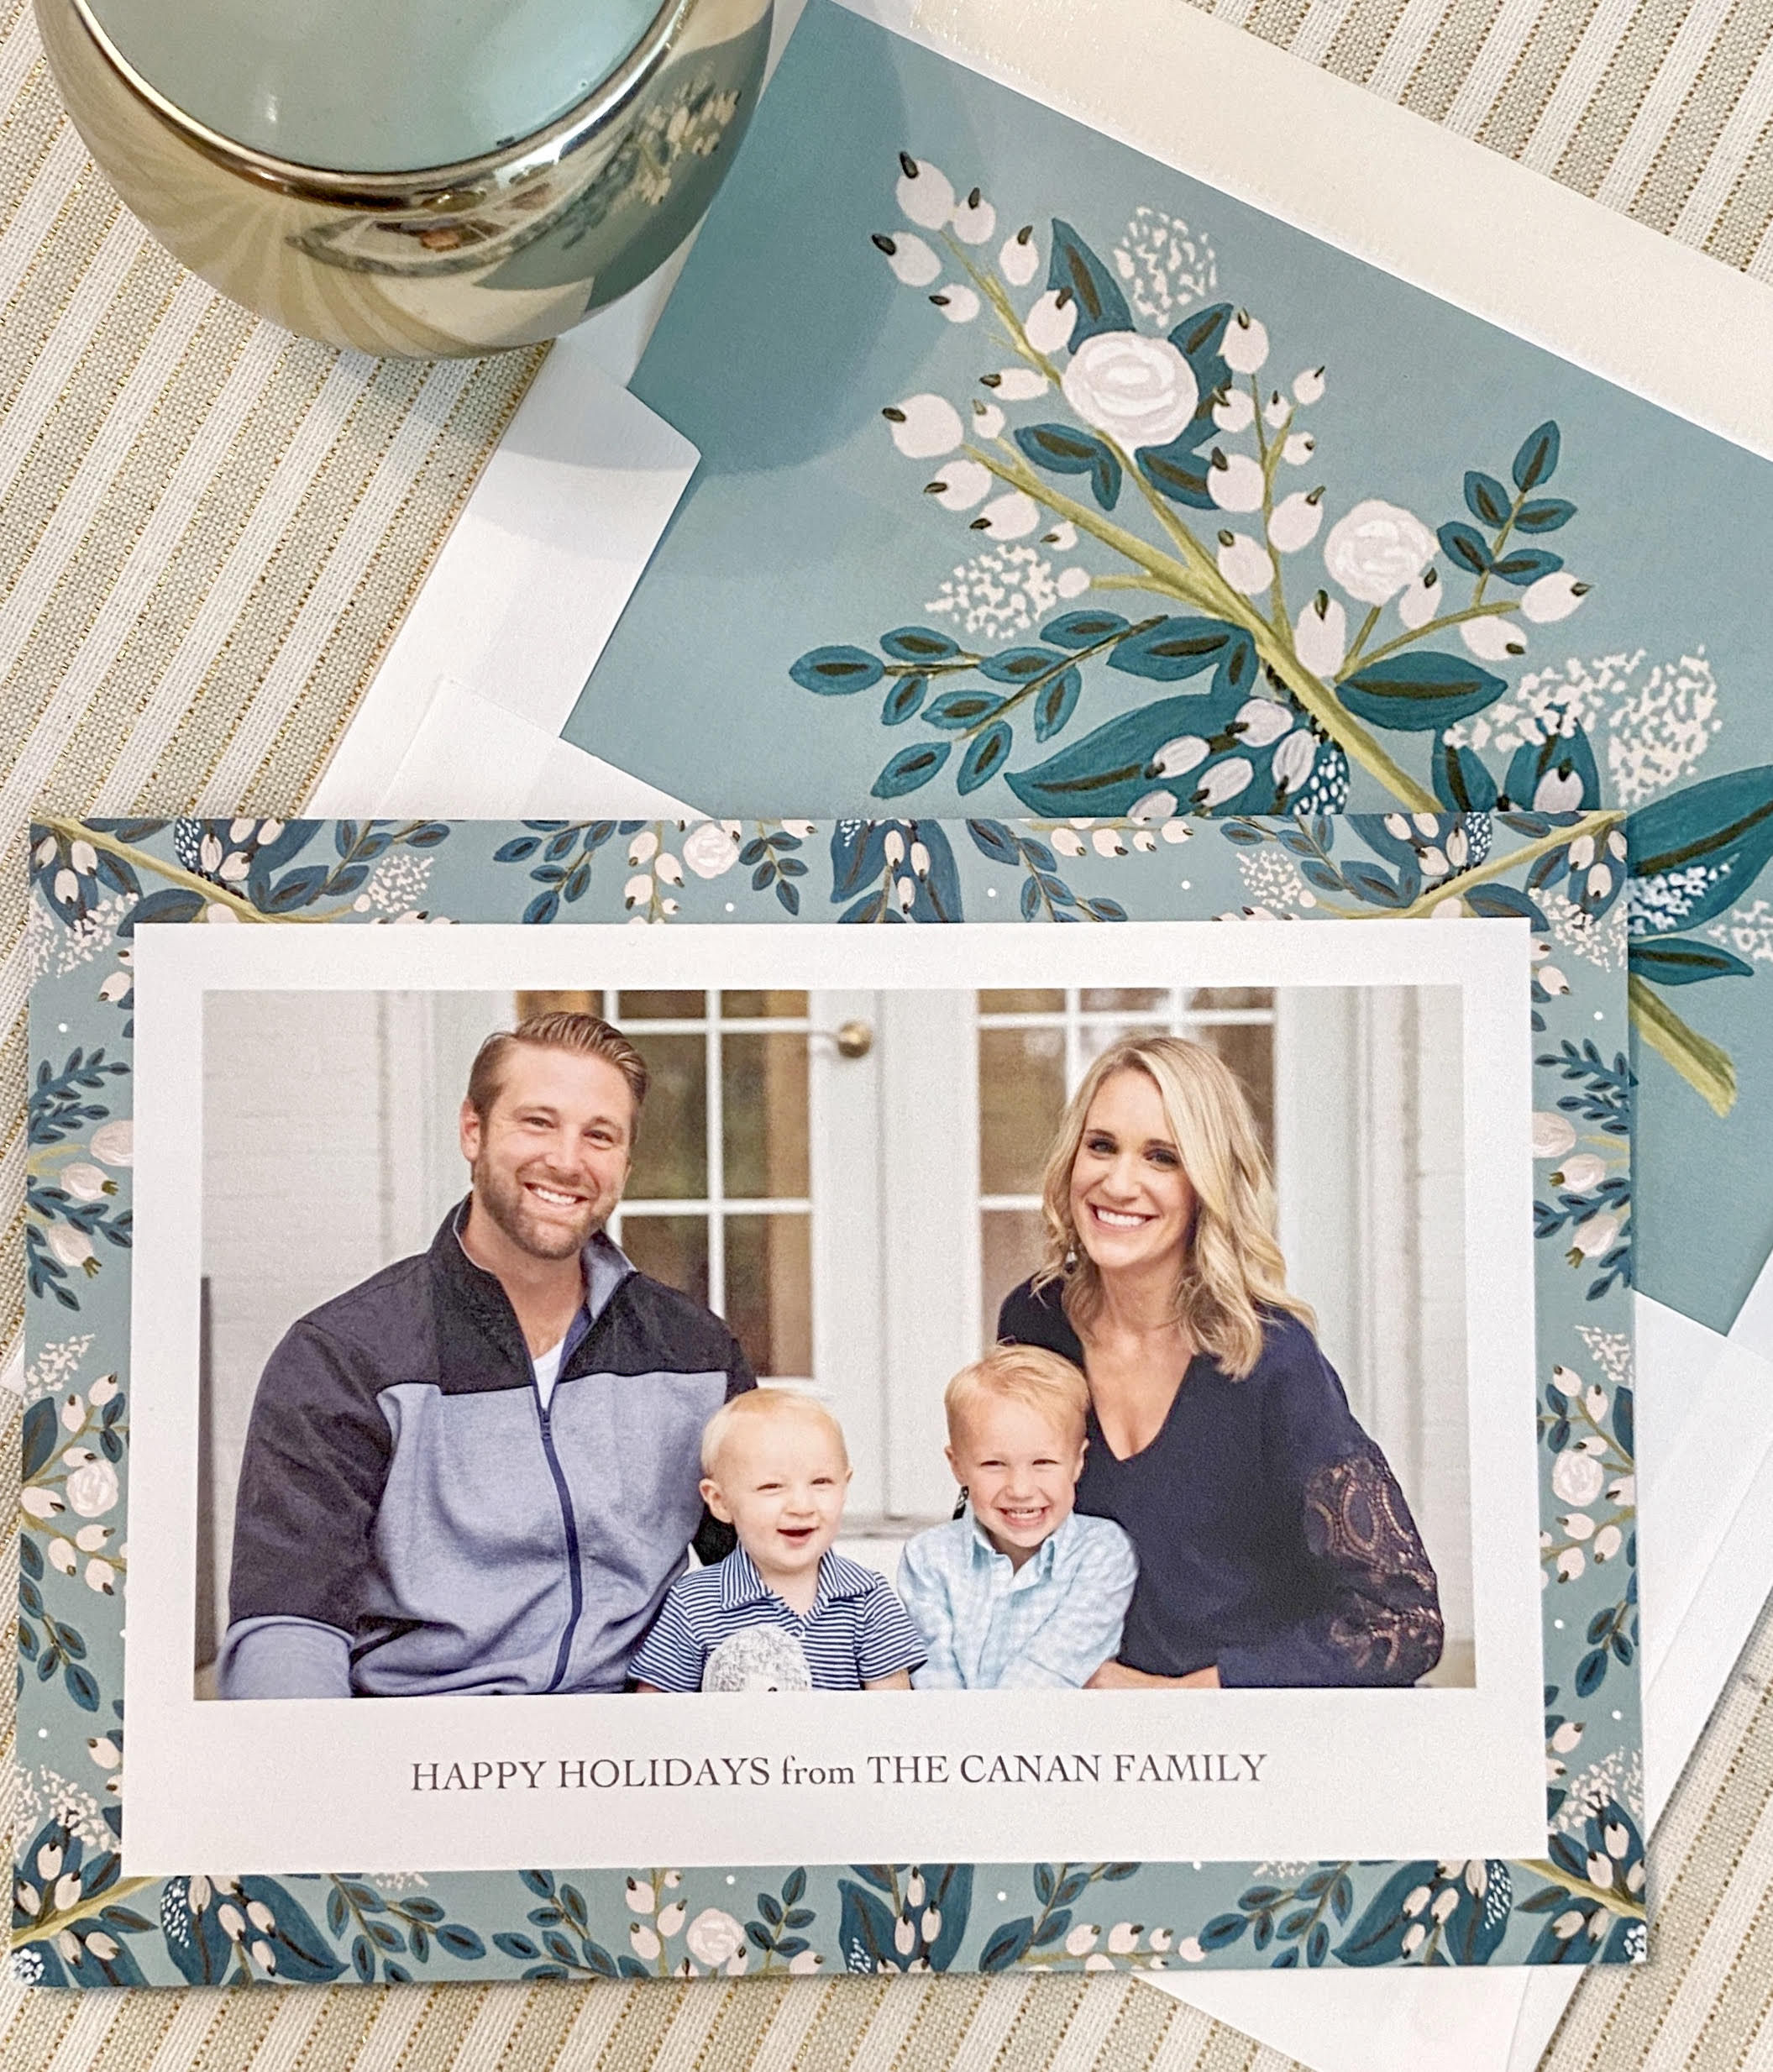 image of a blue and white floral family holiday card